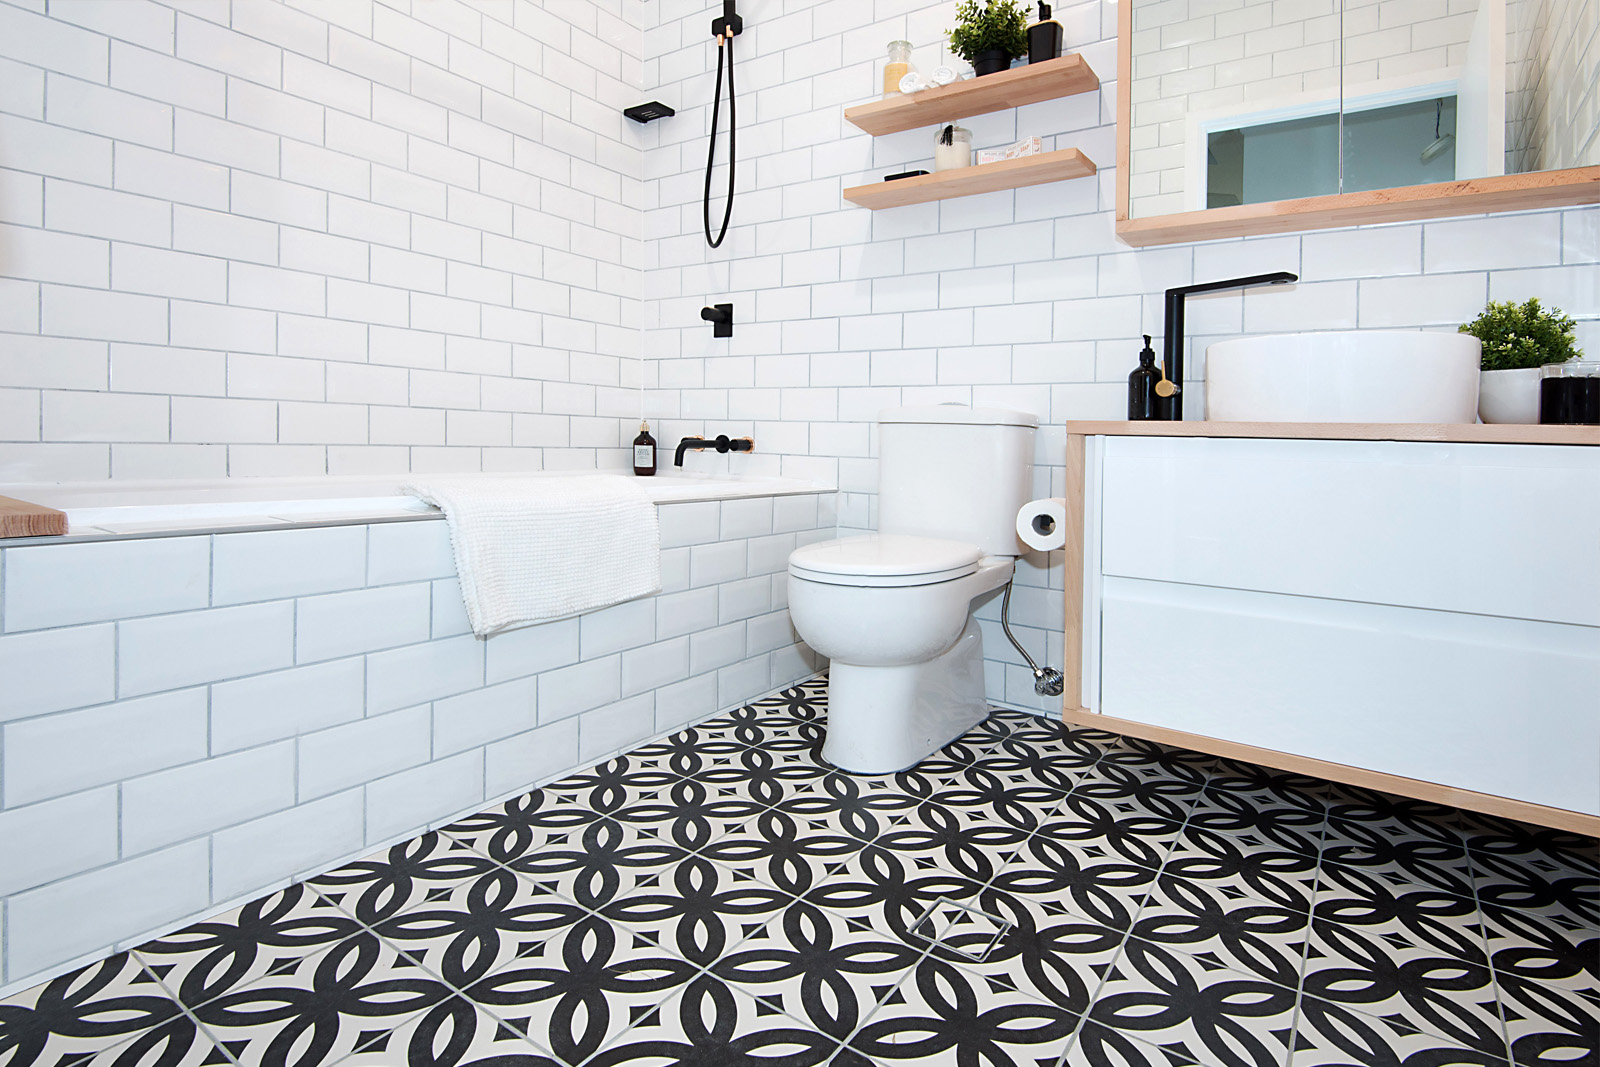 Cherie-Barber_Renovating-For-Profit_Colyton-Bathroom-after-floor